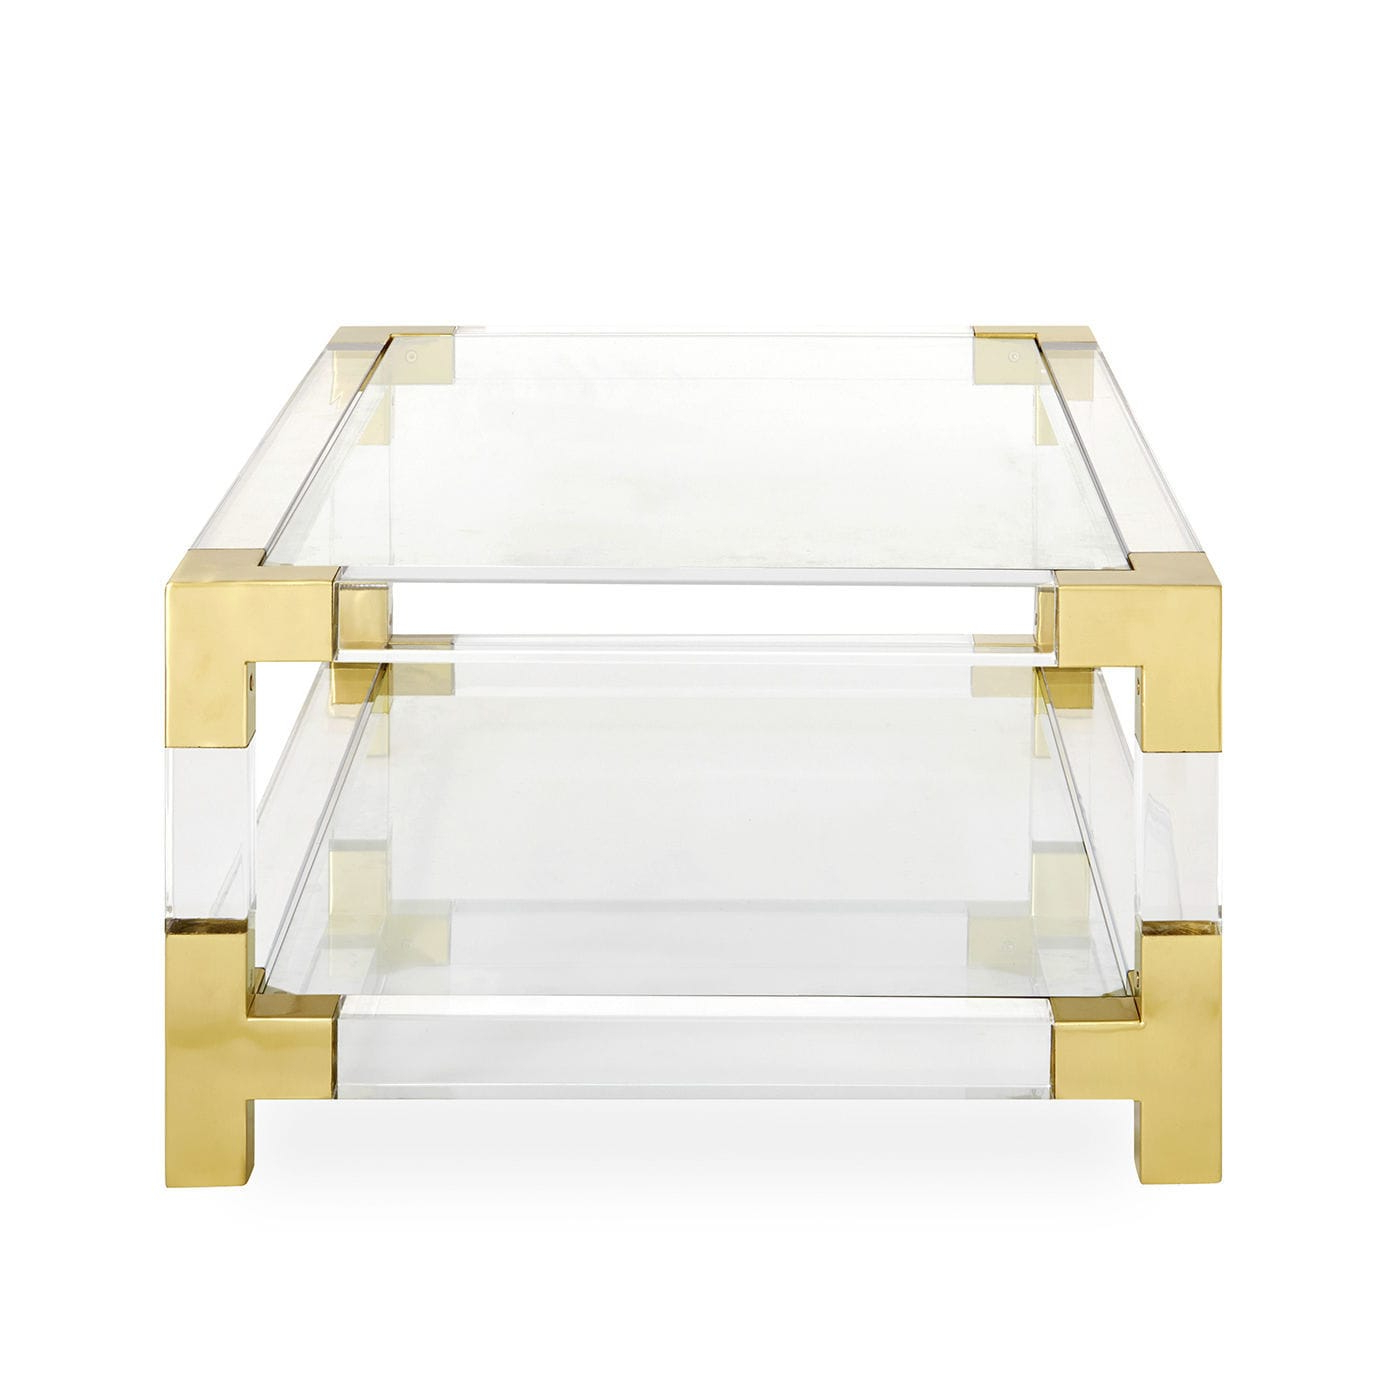 Fashionable Acrylic & Brushed Brass Coffee Tables With Regard To Contemporary Coffee Table / Glass / Brushed Brass / Acrylic (View 9 of 20)